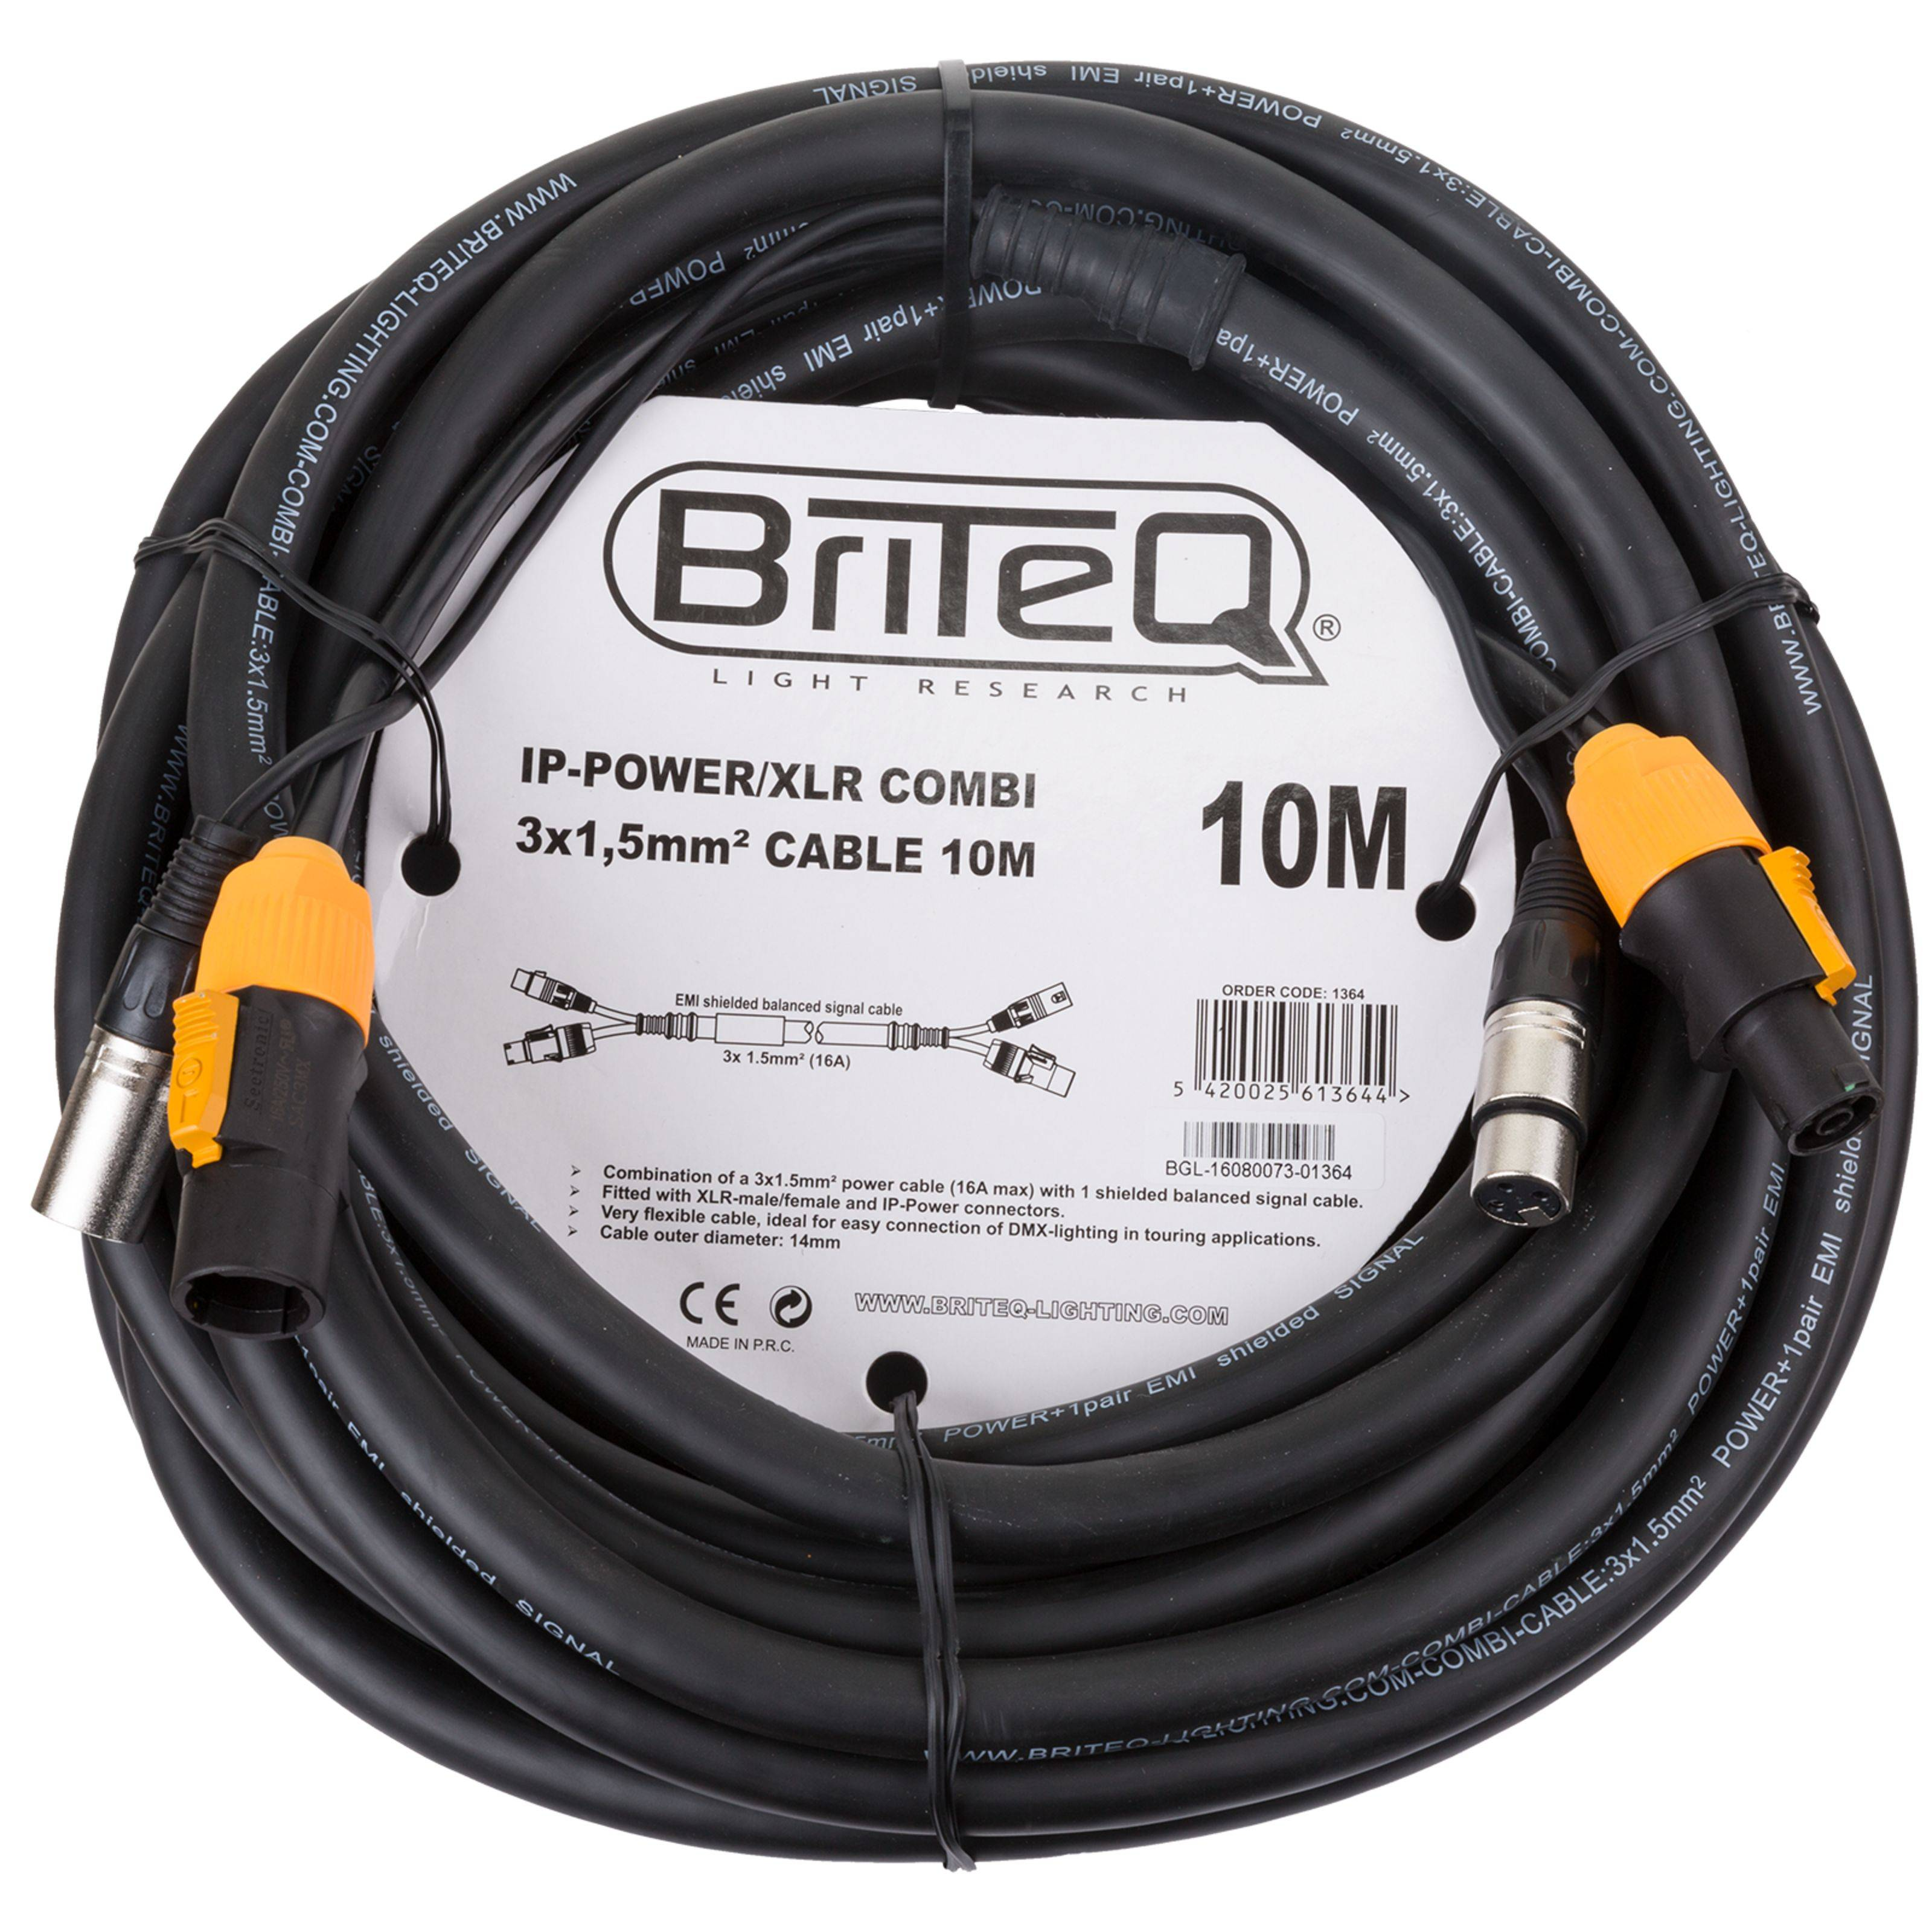 Briteq IP-Powercon/XLR combi cable 10m